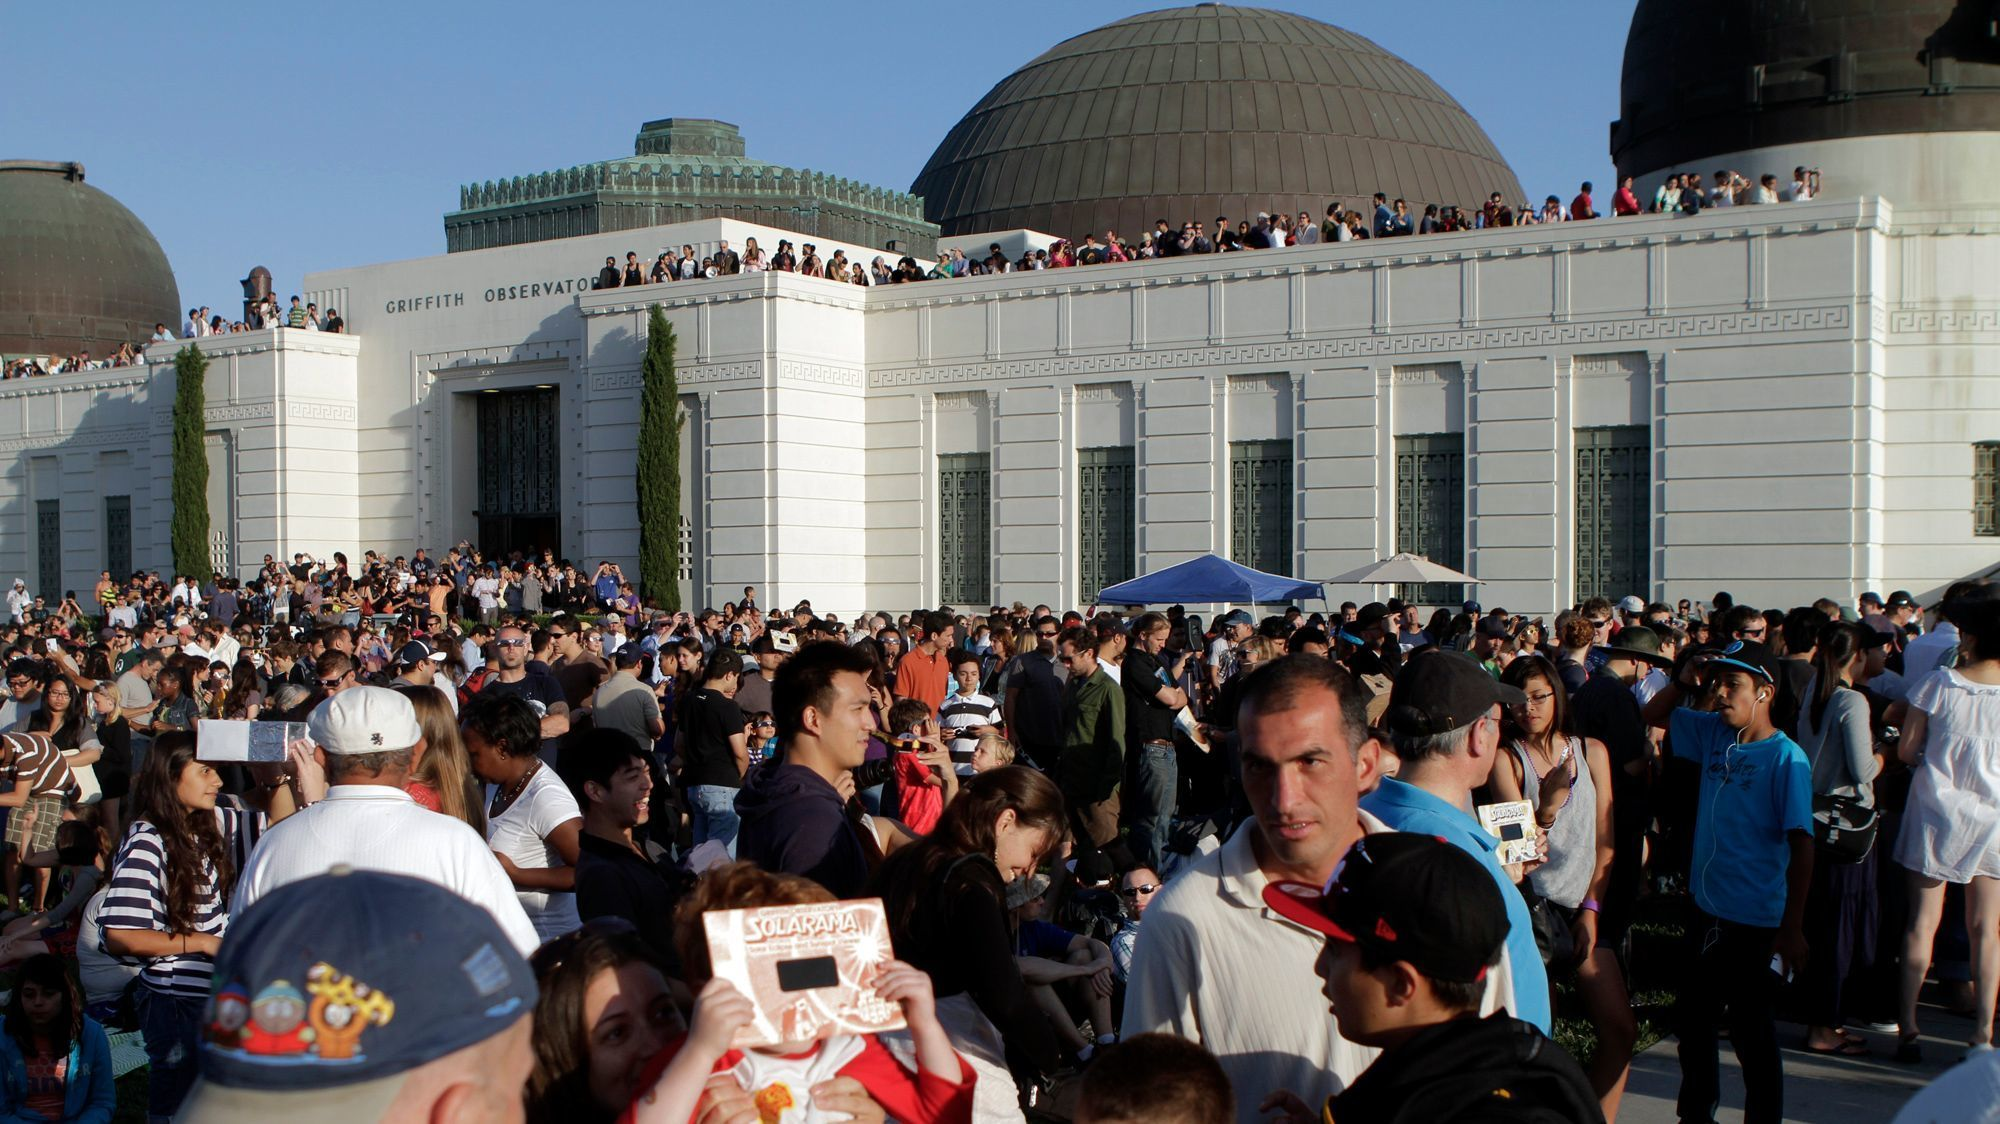 A partial solar eclipse in 2012 drew an enthusiastic crowd to the Griffith observatory.